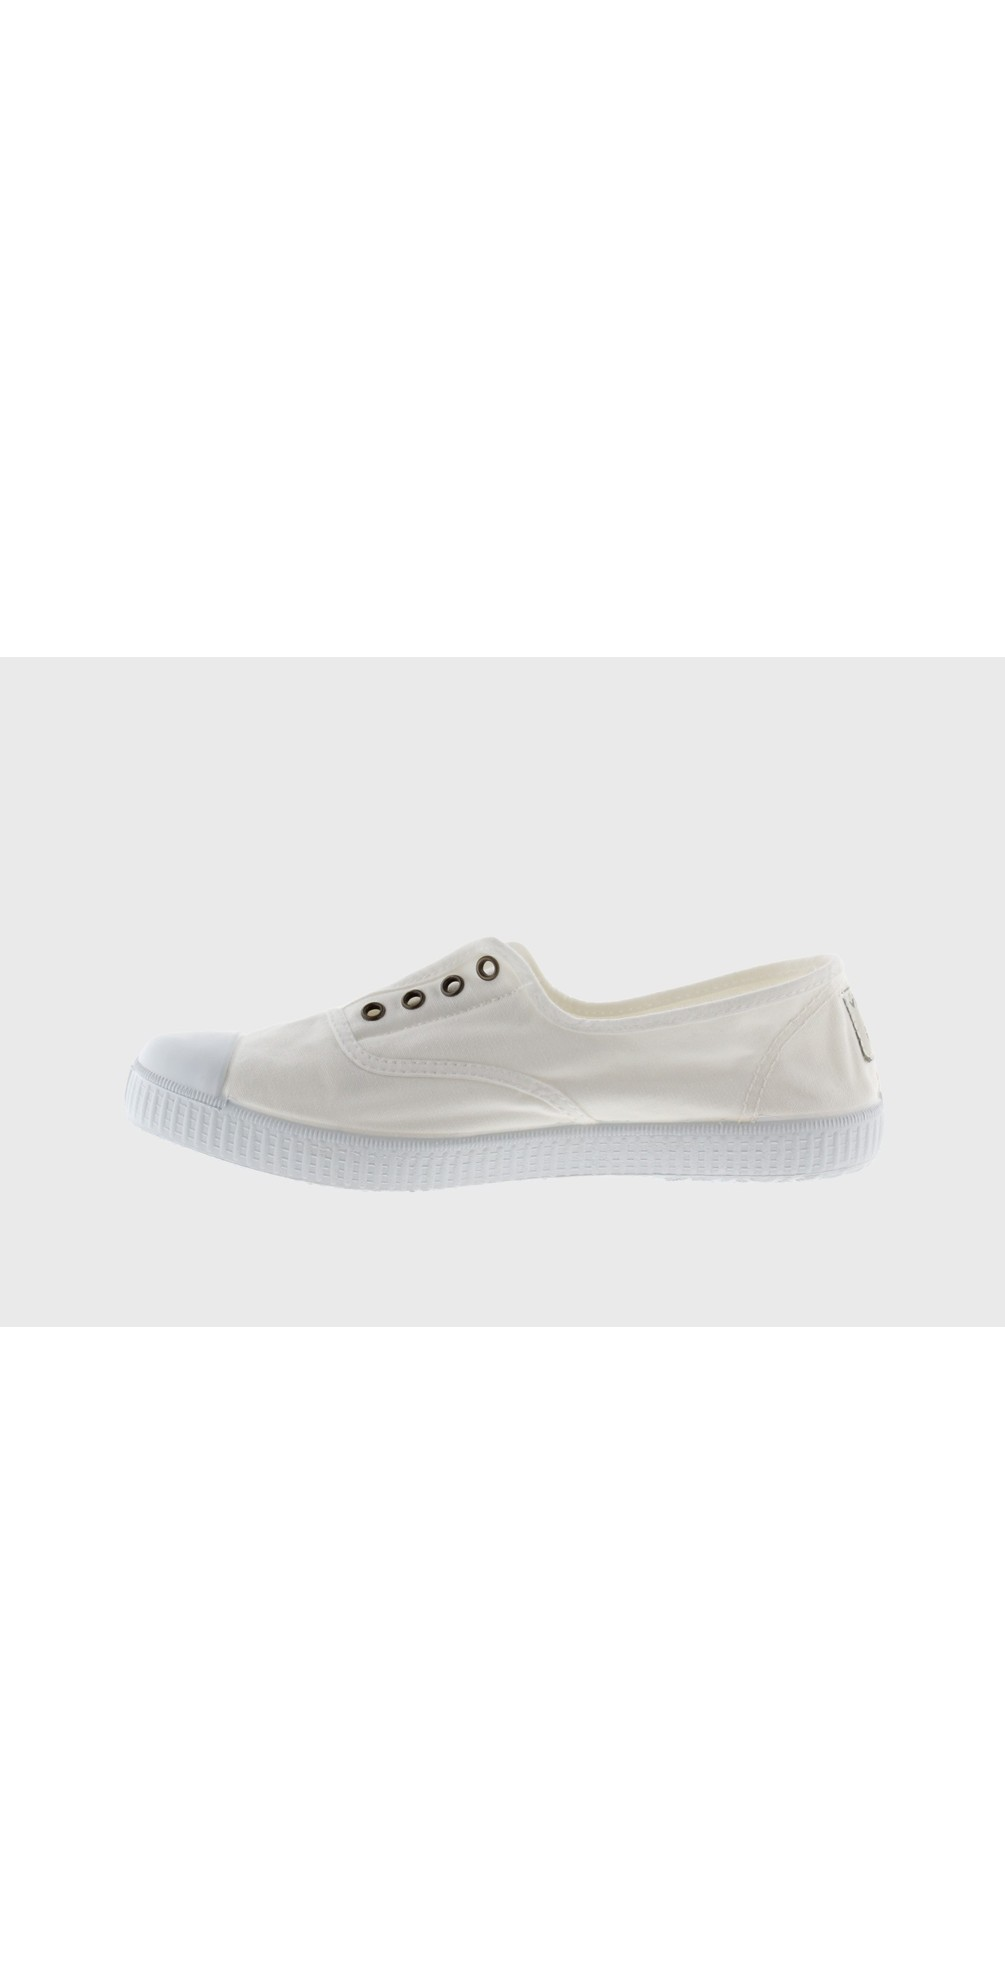 Dora Organic Cotton No Lace Pump main image